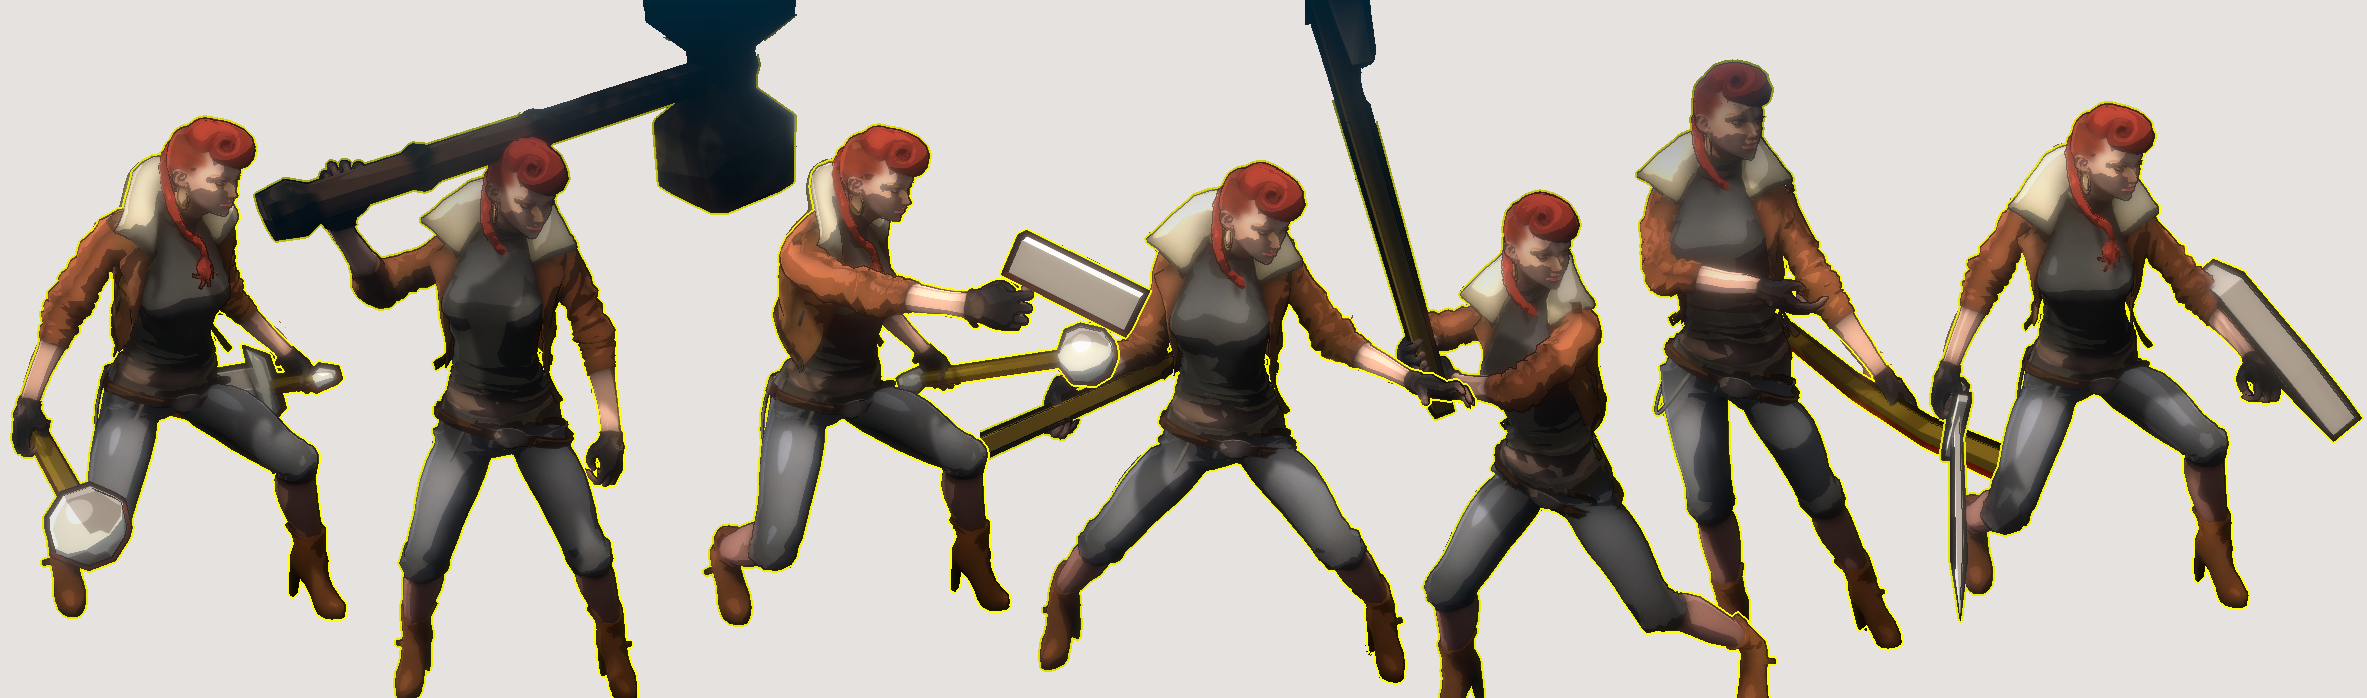 all weapon poses main character